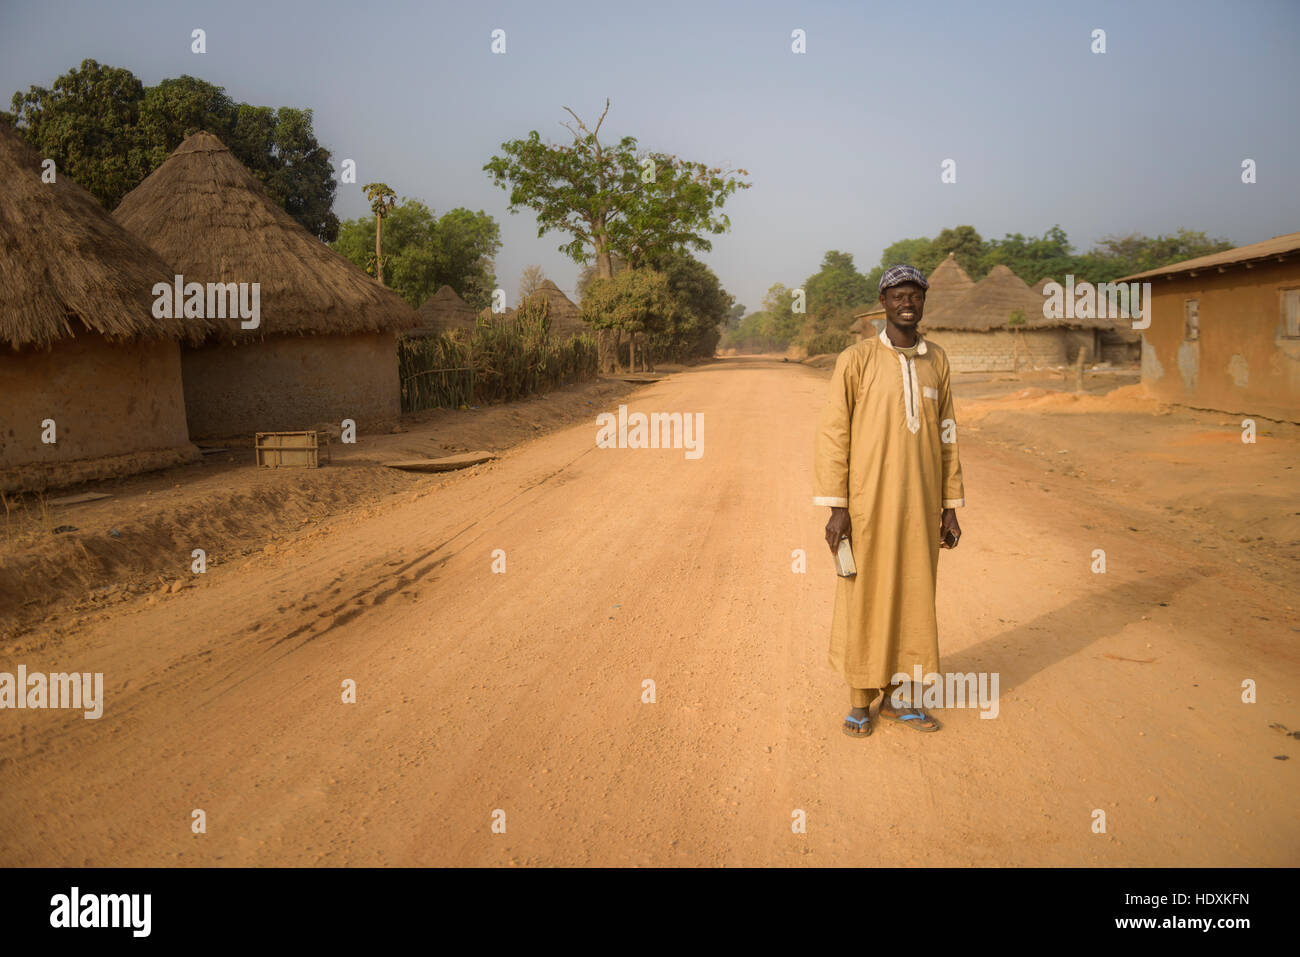 Portraits of Guineans, Guinea - Stock Image